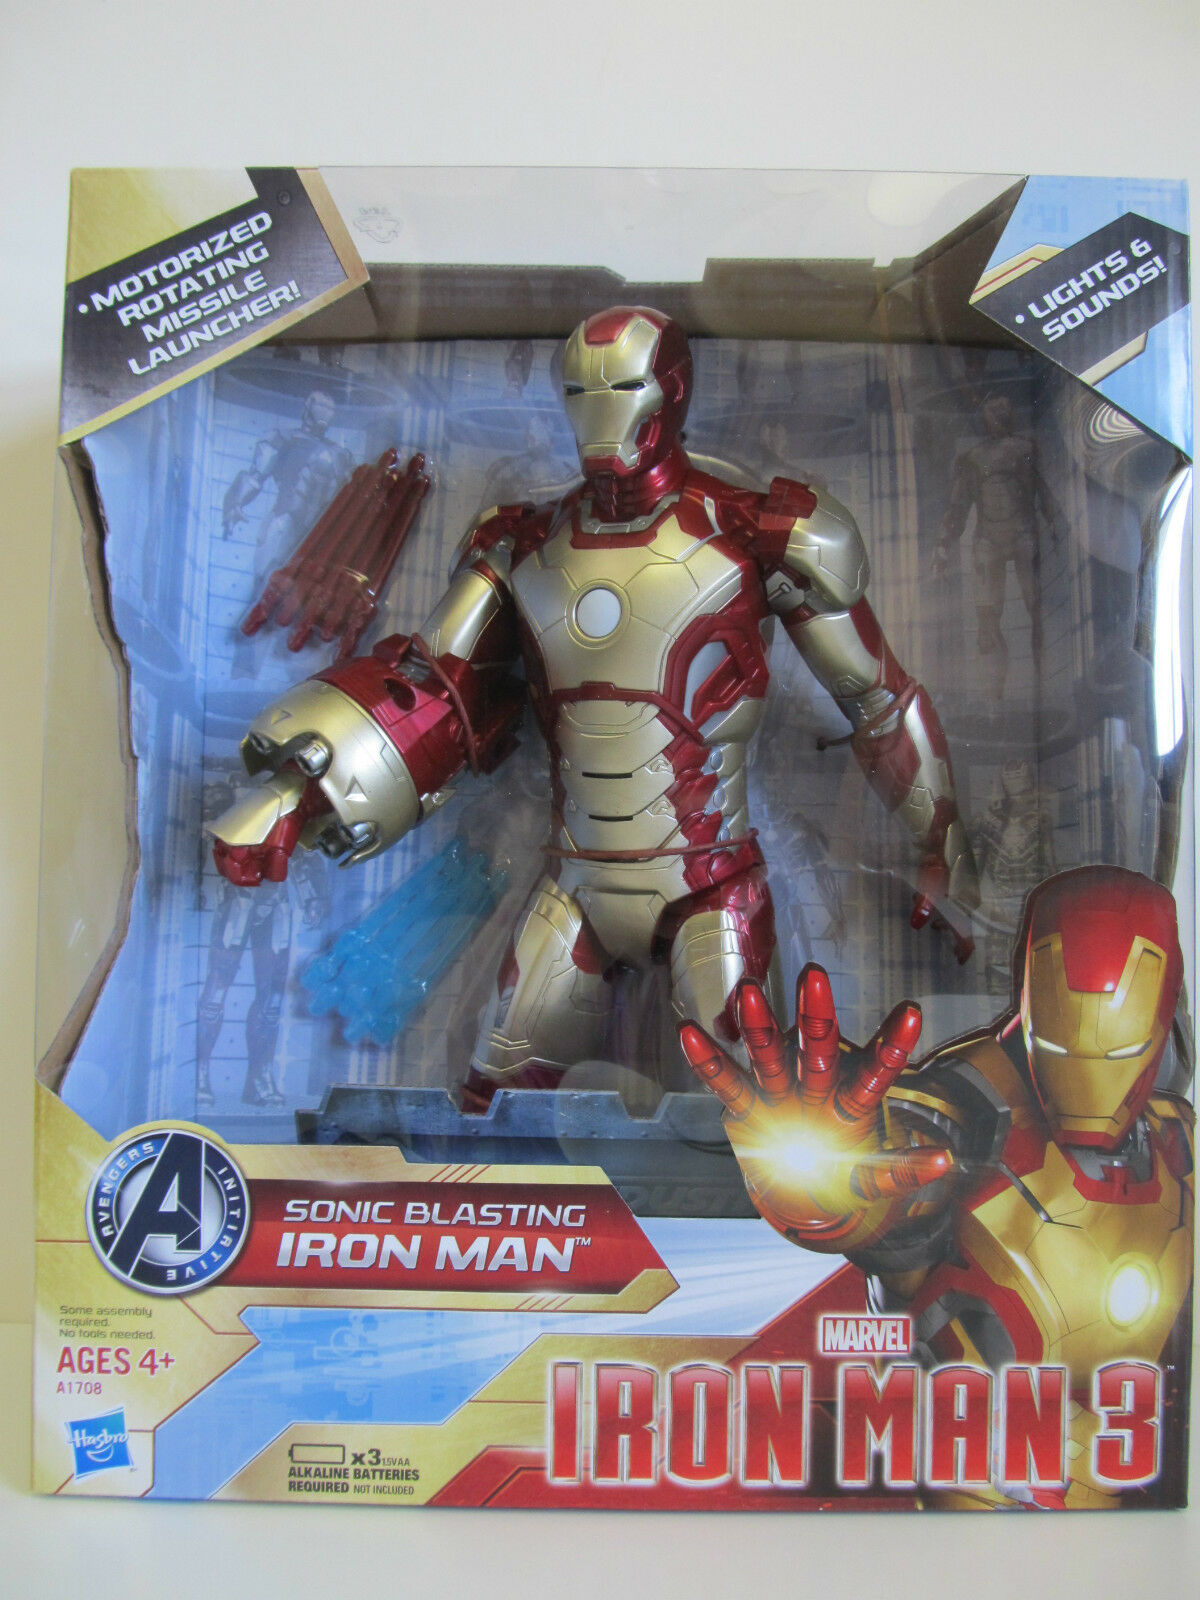 Marvel Sonic Blasting Iron Man 3 Action Figure w  Missile Launch Lights & Sound